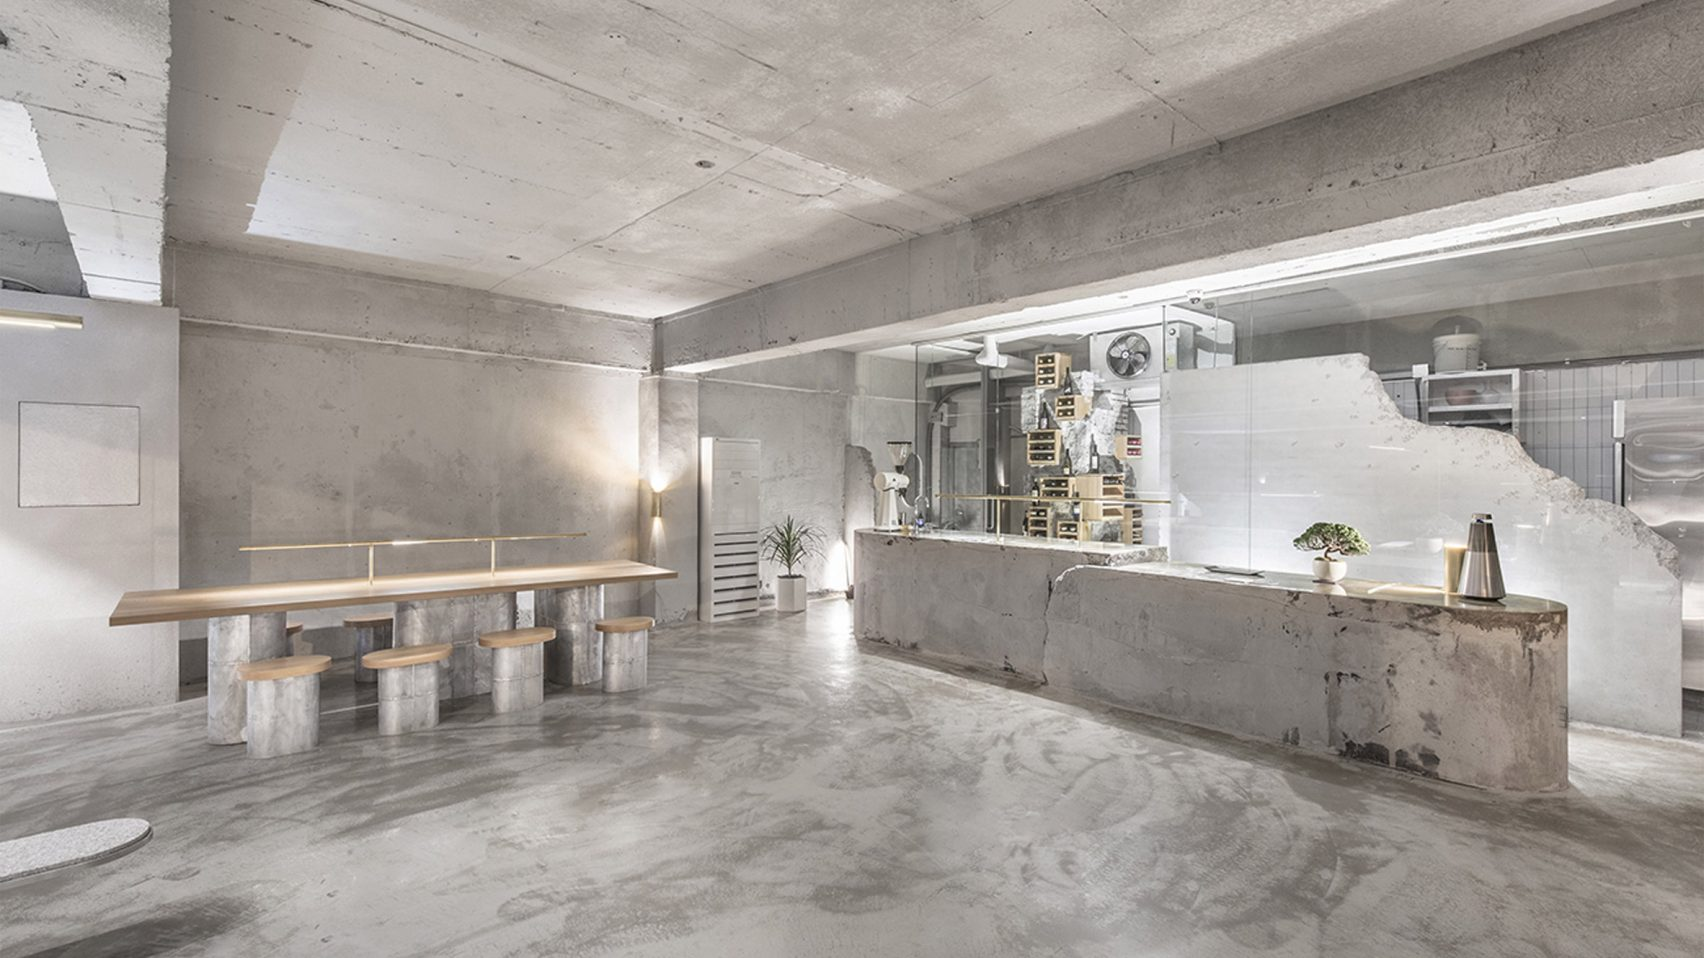 Photo Credit: Jeonghwa       Seo   We are absolutely in love with the raw, crisp and fresh interior of Et Cetera Cafe in Seoul with interior design by Jeonghwa   Seo. have a further look  here..